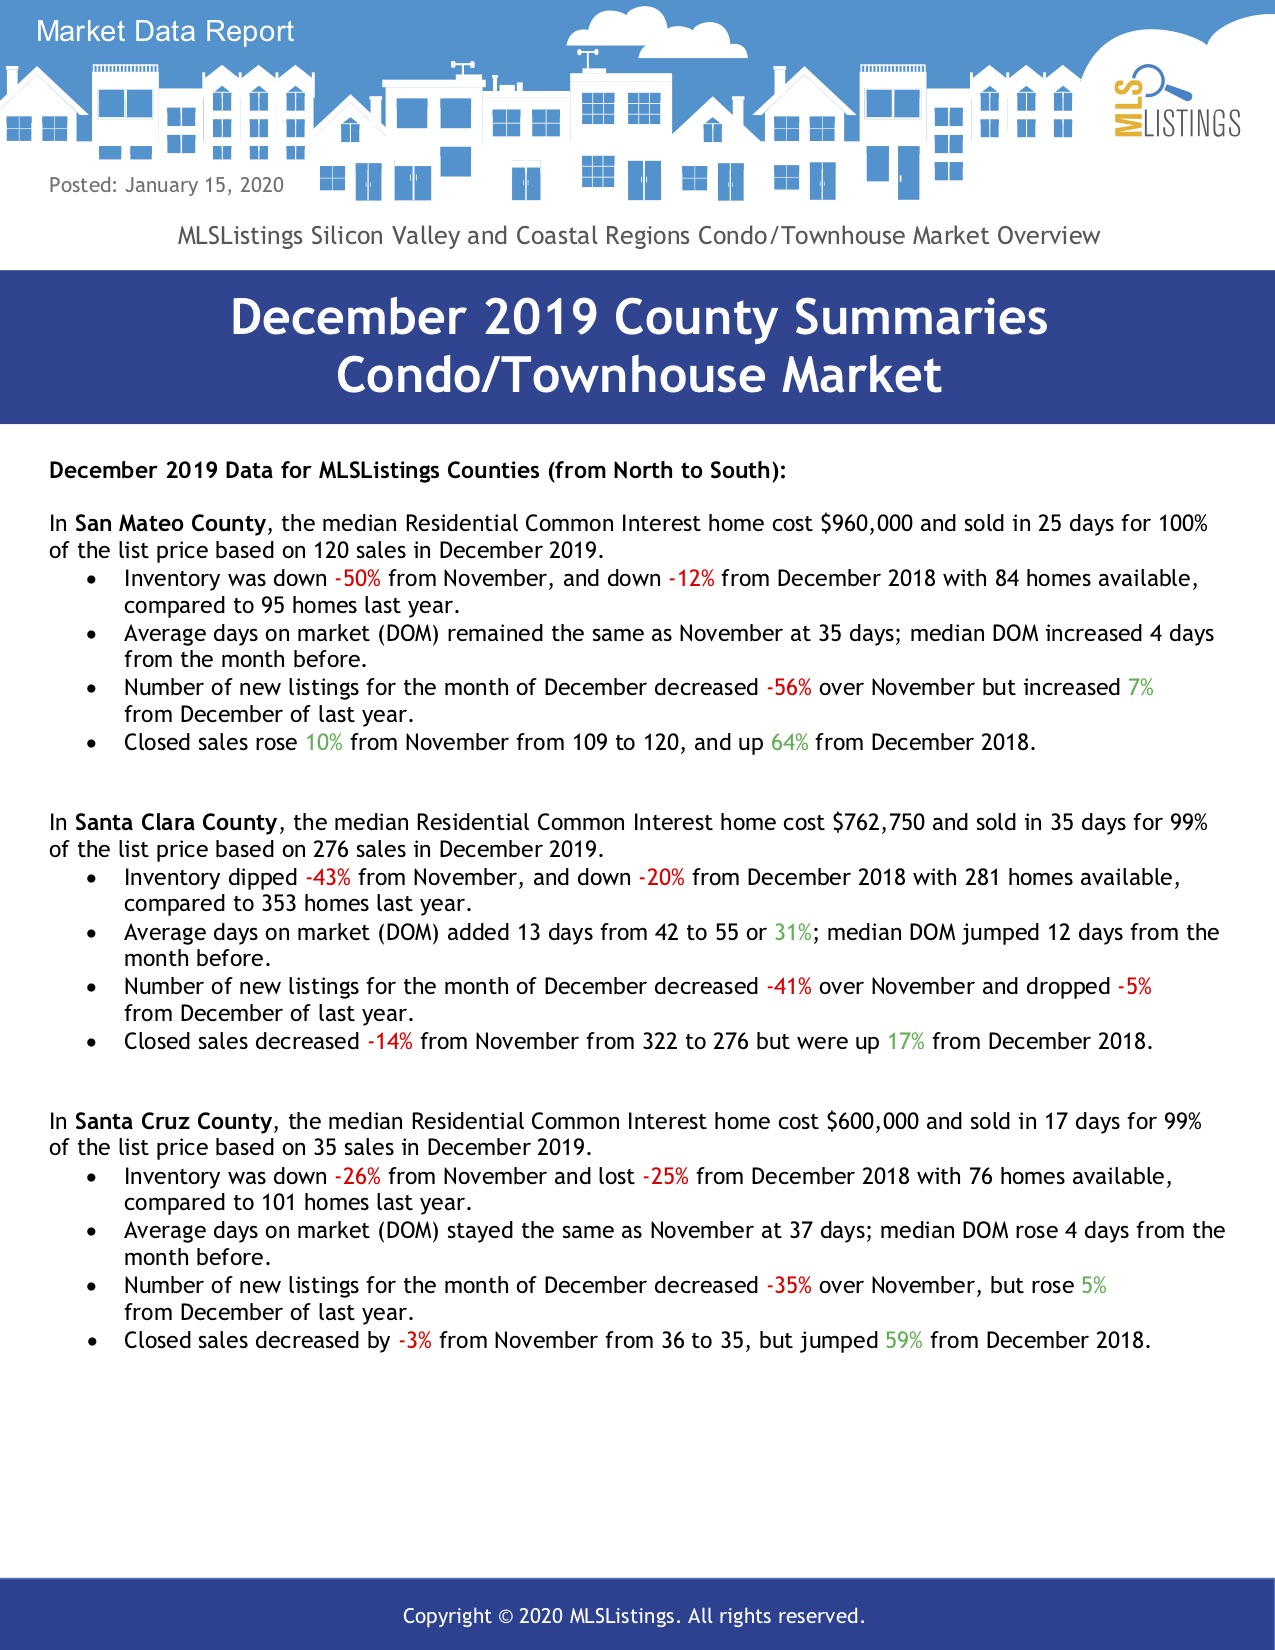 December 2019 Condo Townhouse Market